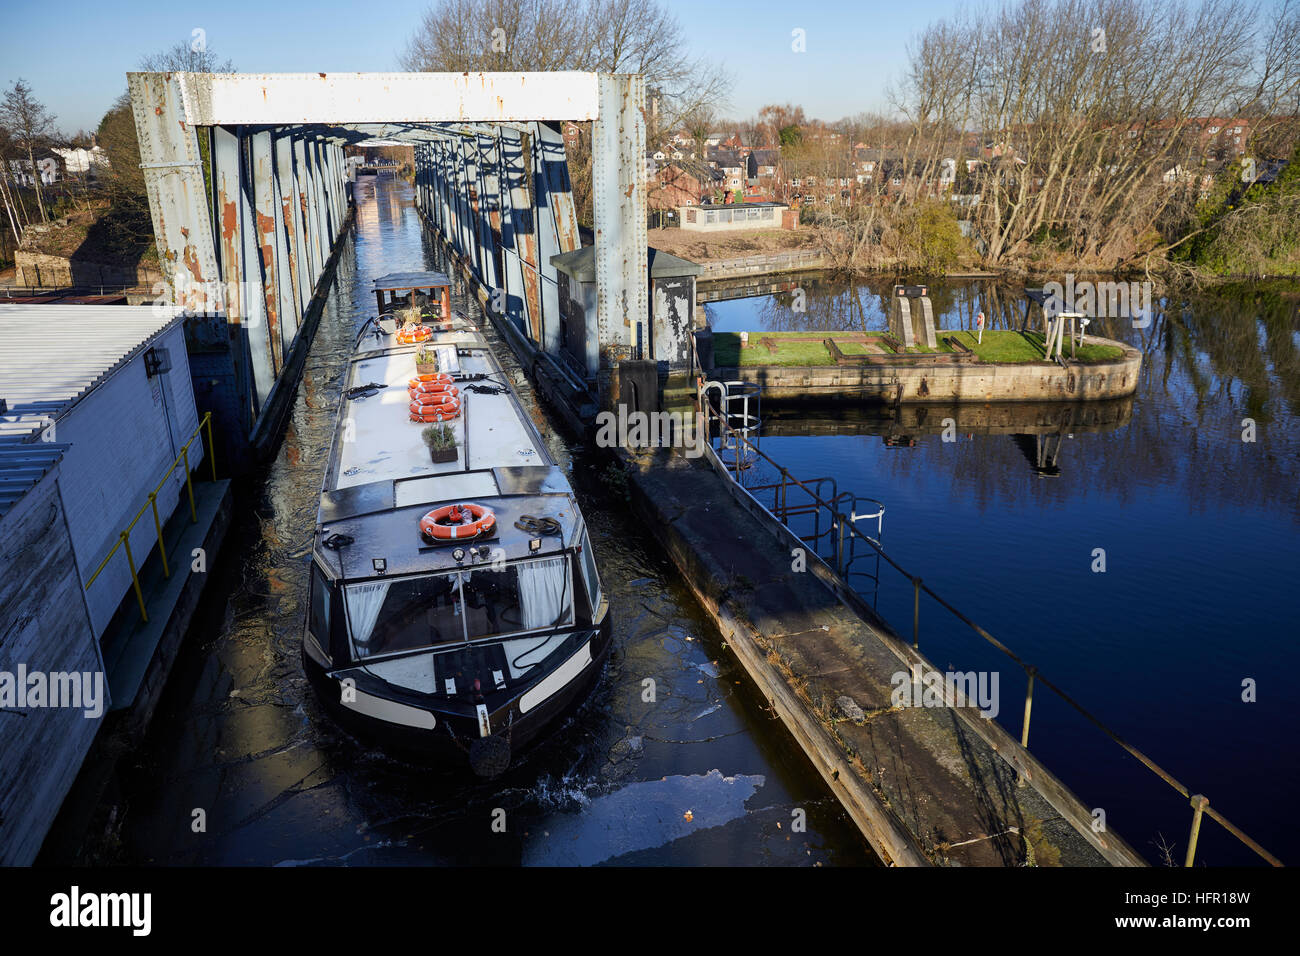 Manchester  Ship Canal Barton Swing Aqueduct  moveable navigable aqueduct carries Bridgewater Canal narrowboats Stock Photo